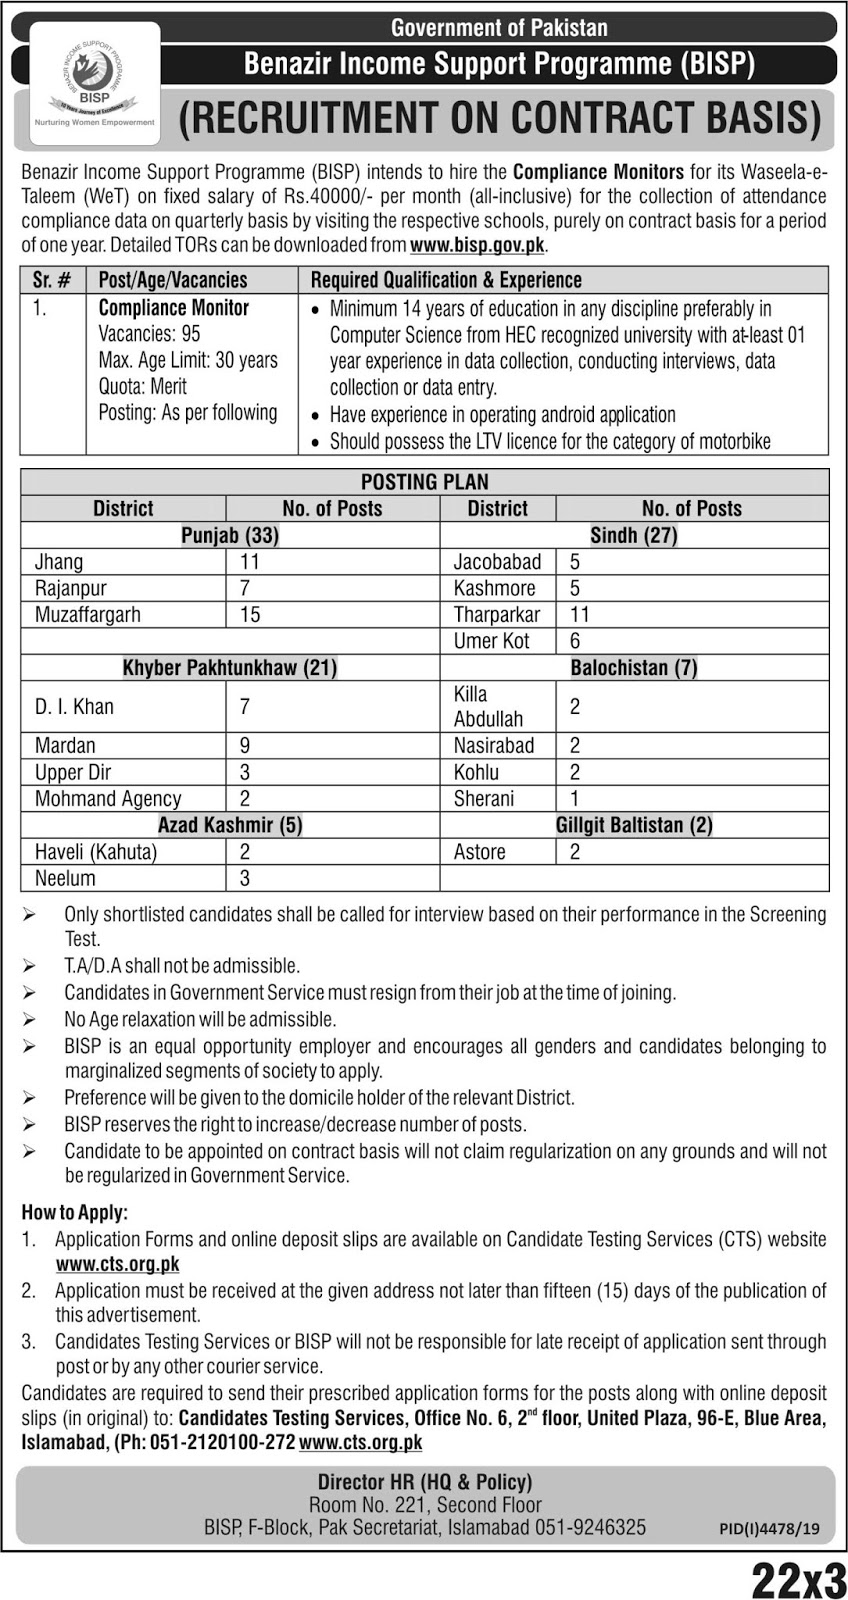 BISP Jobs 2020 - Latest BISP Jobs 2020 90+ Posts all Over Pakistan